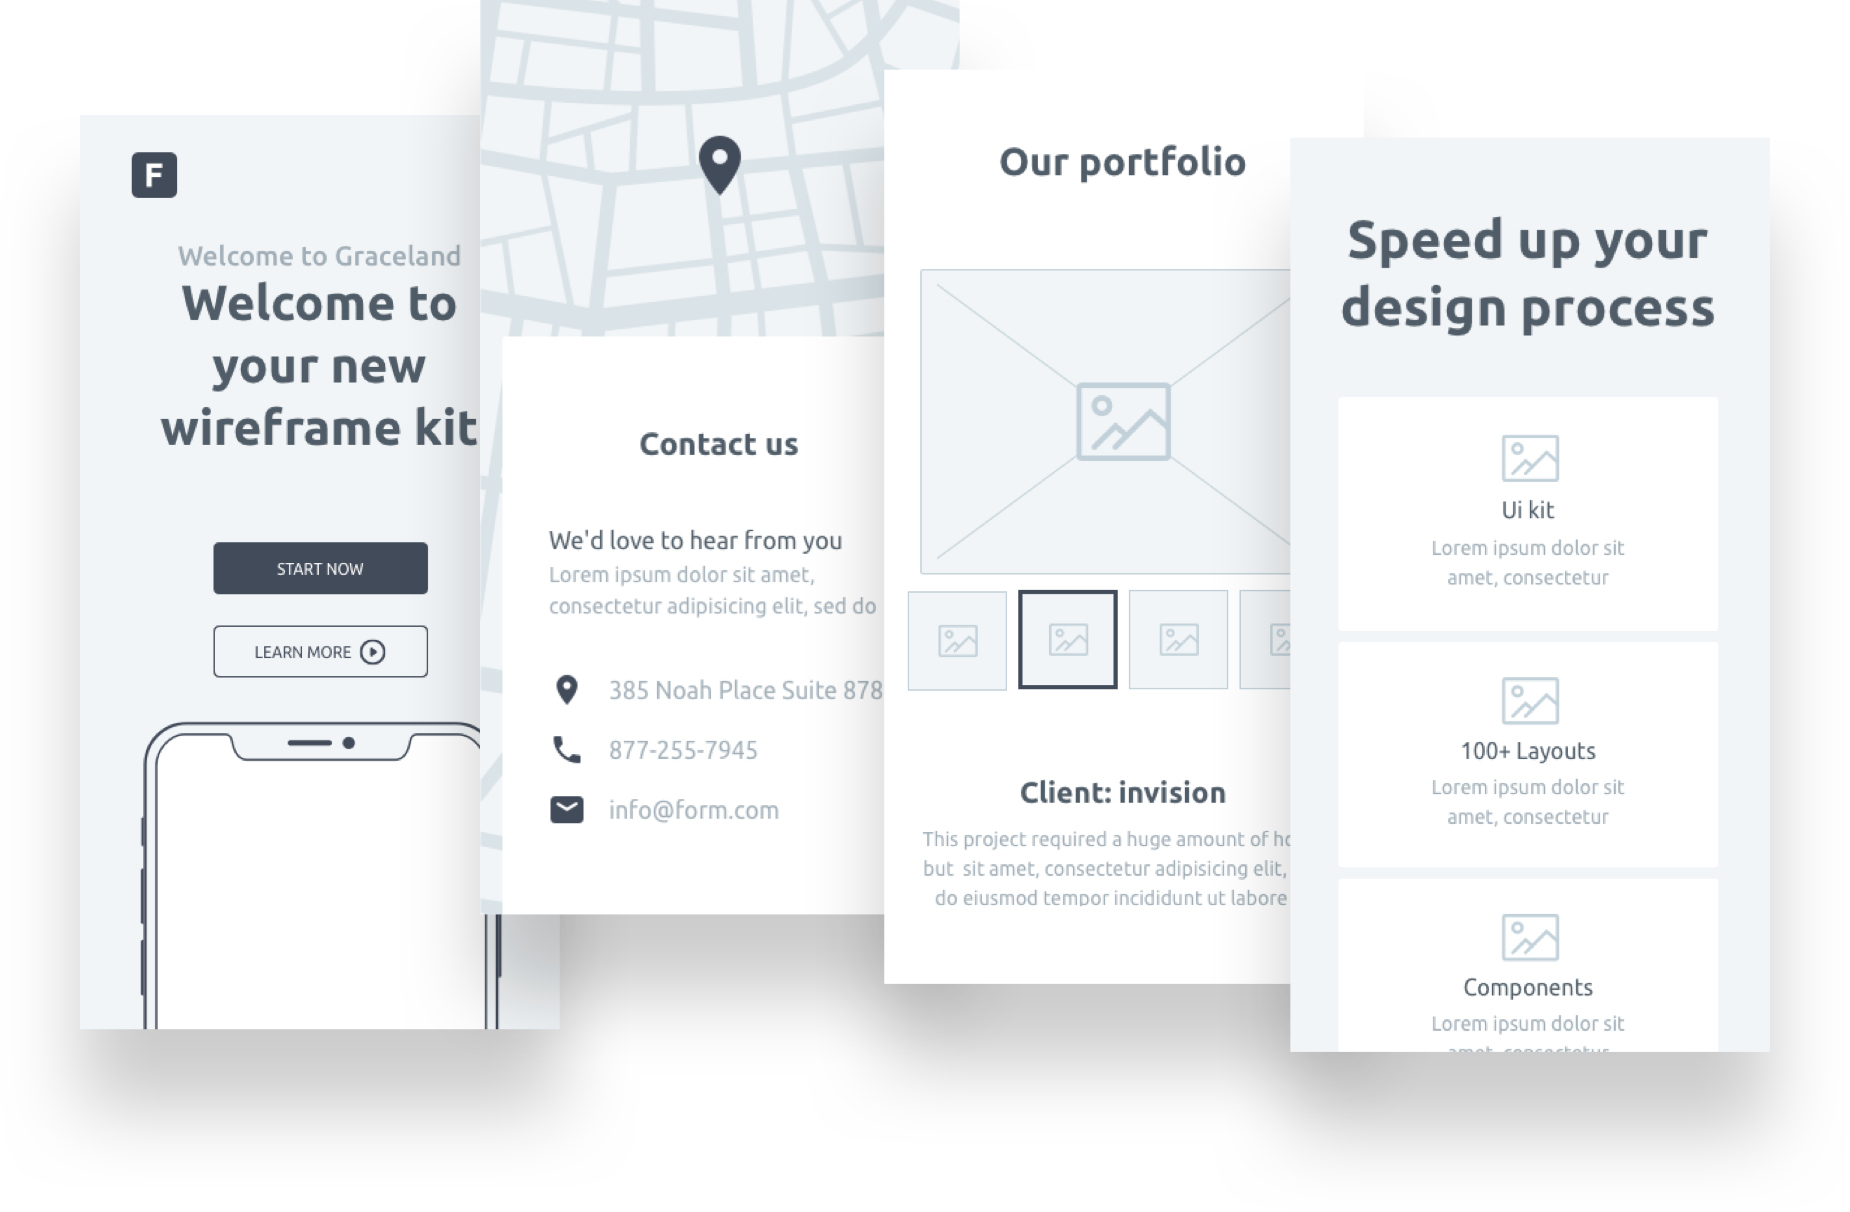 Form: A free wireframe kit from InVision